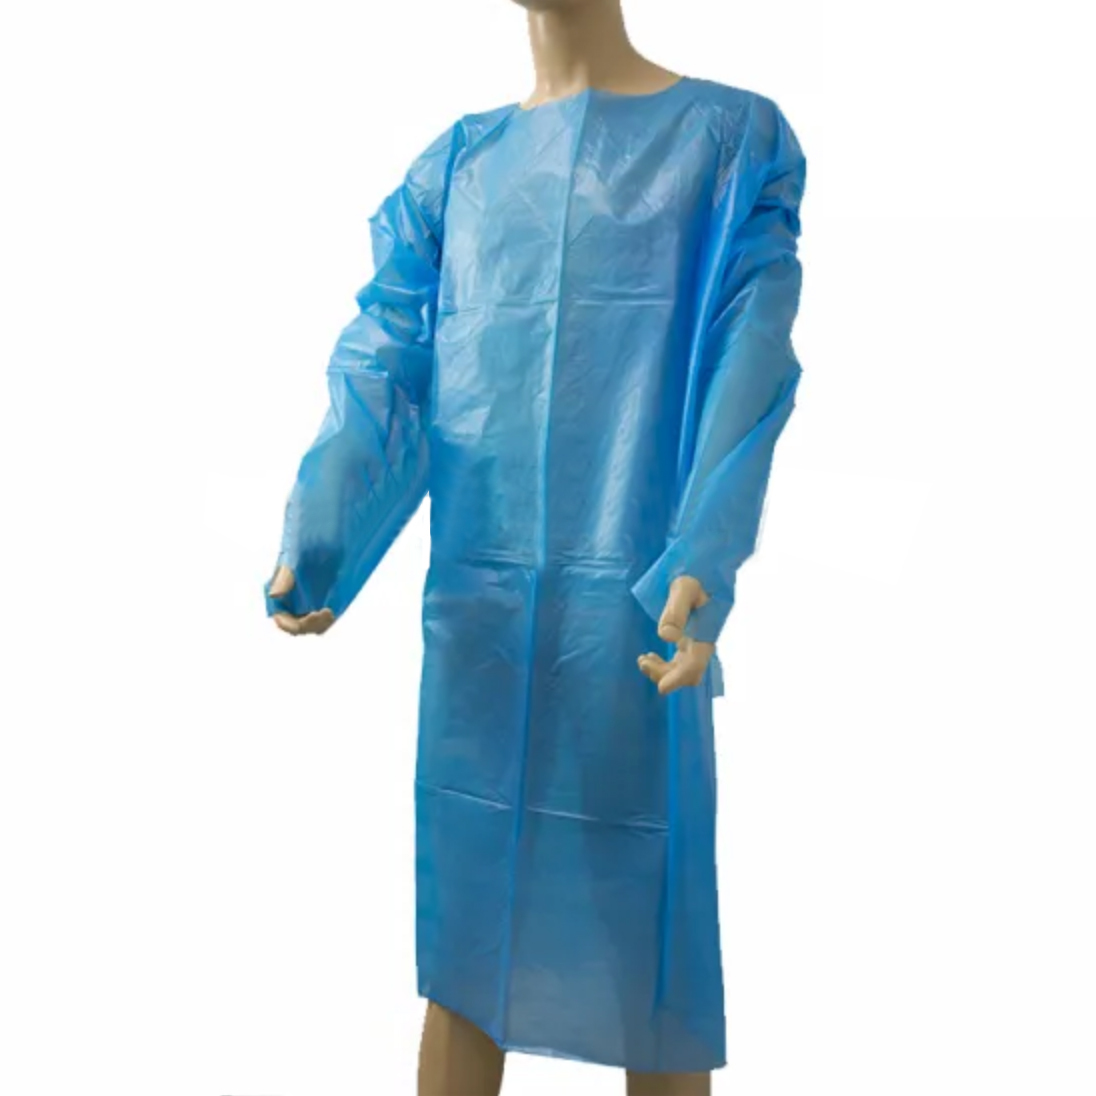 Featured Products - BodyMed® Non-Surgical Isolation Gown - Click to Shop